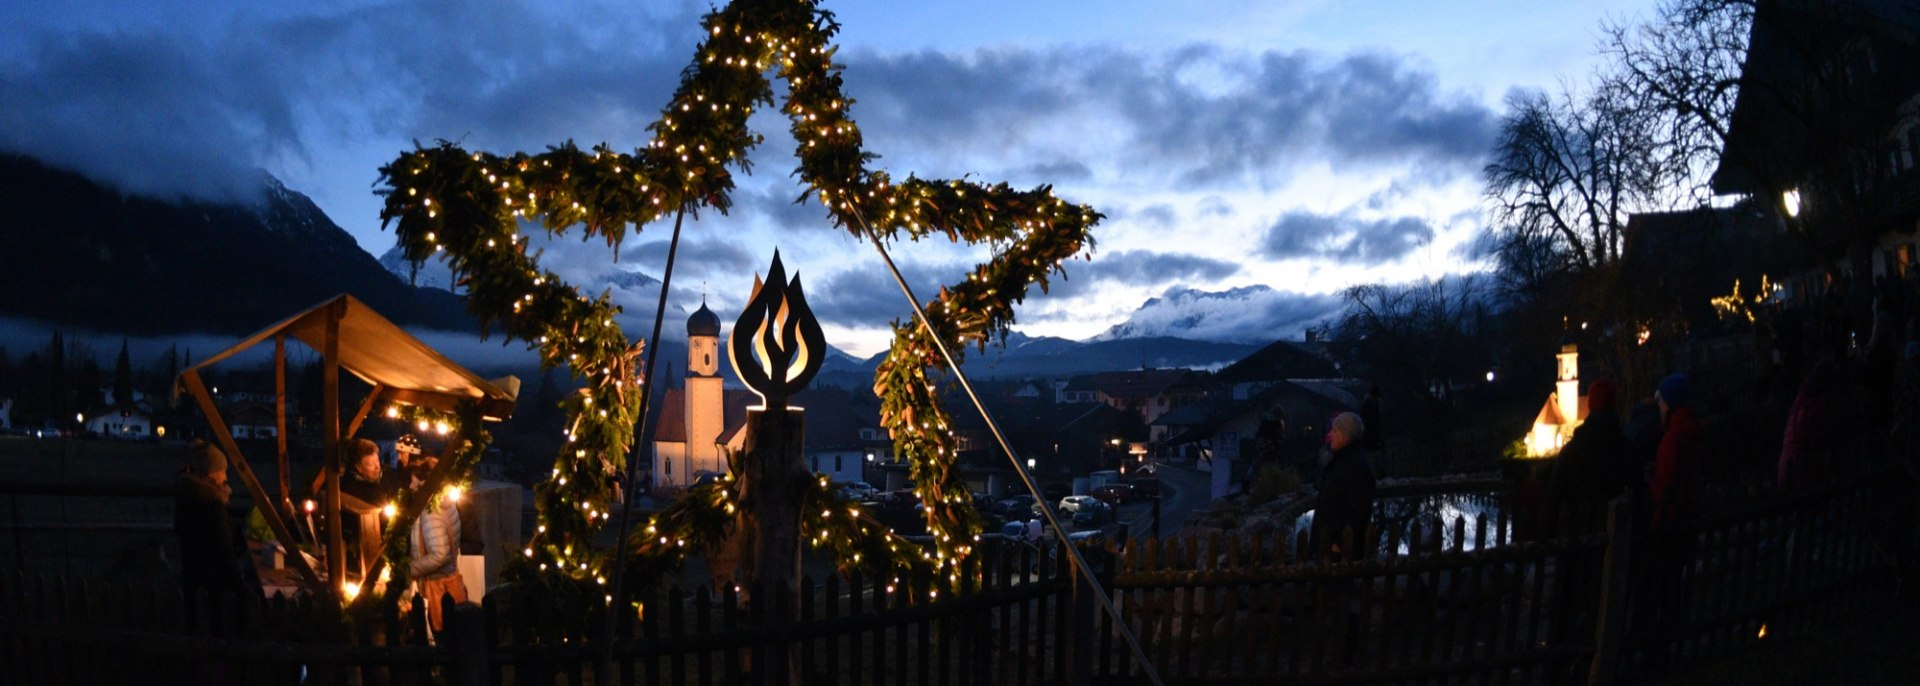 Adventsmarkt der Sinne in Wallgau, © Alpenwelt Karwendel | Angelika Warmuth